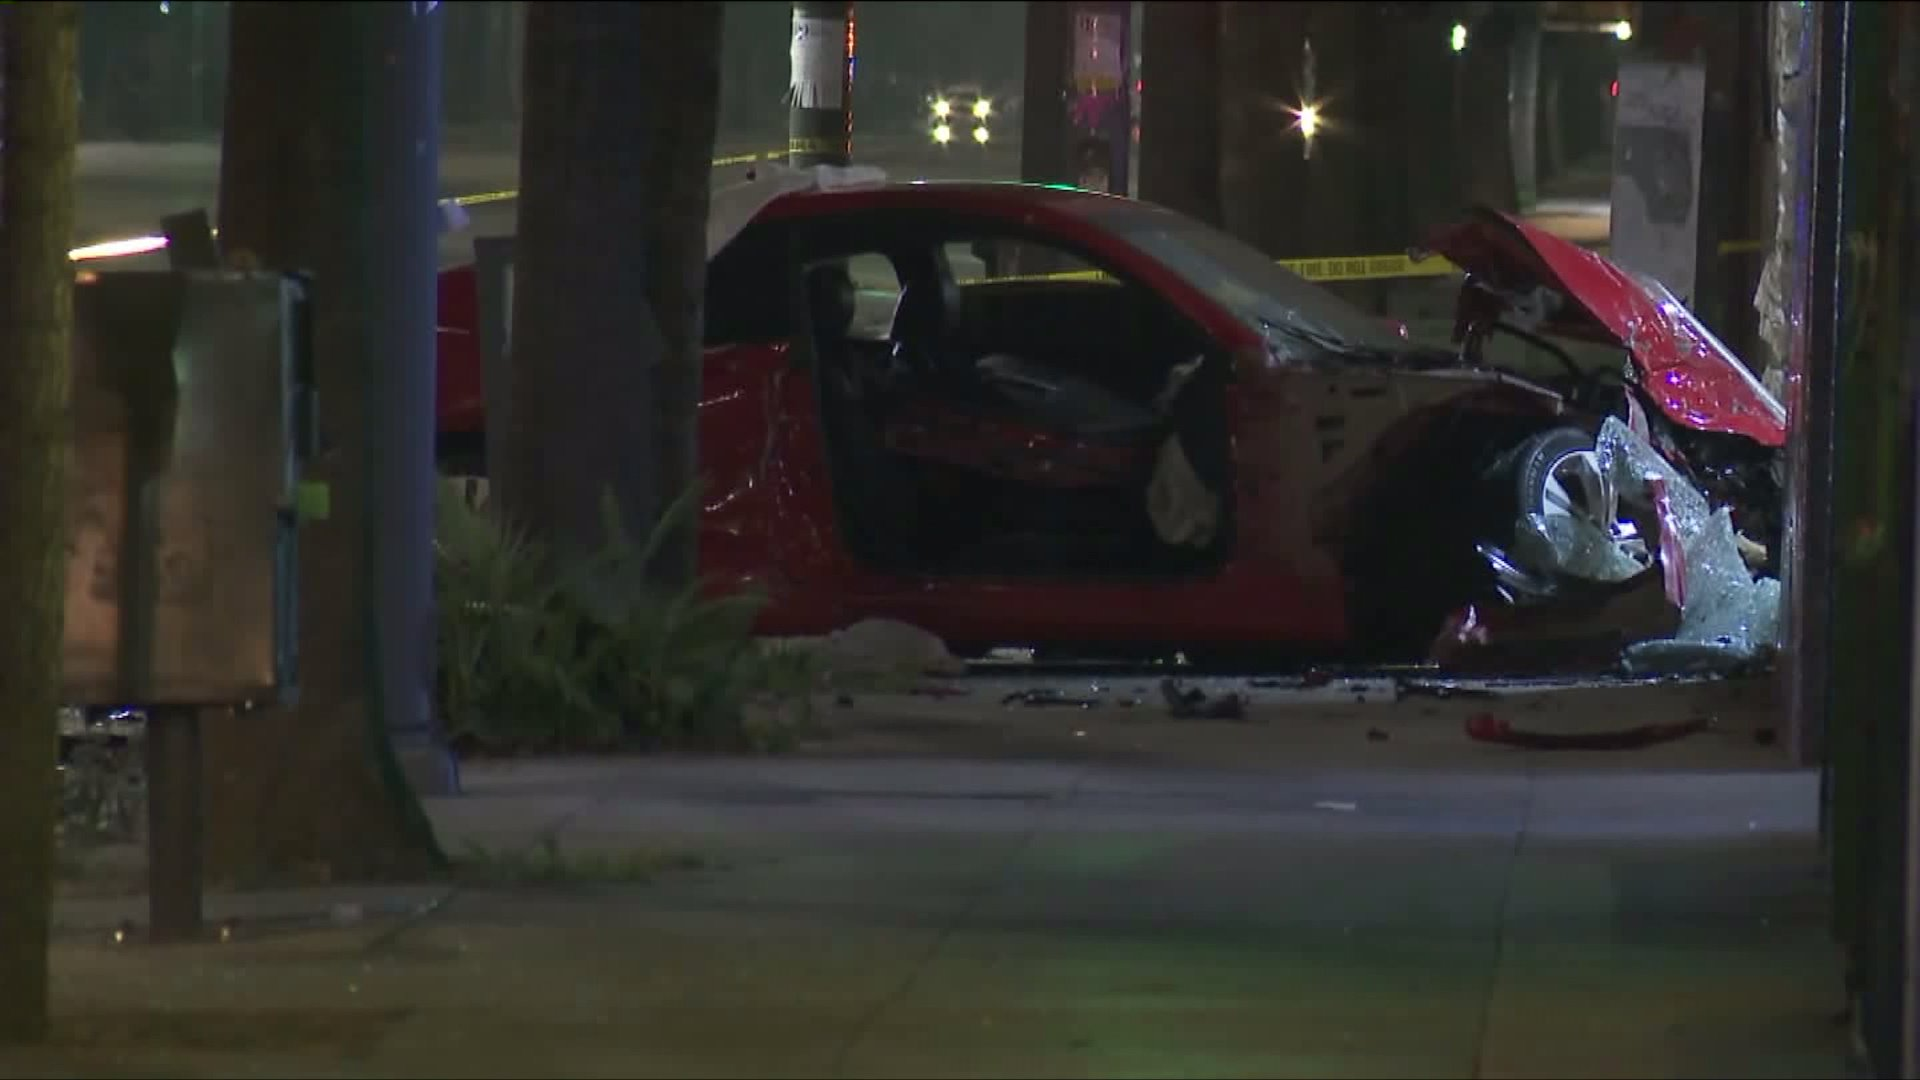 A Hyundai is shown at the scene of a crash in Van Nuys on August 6, 2017. (Credit: KTLA)